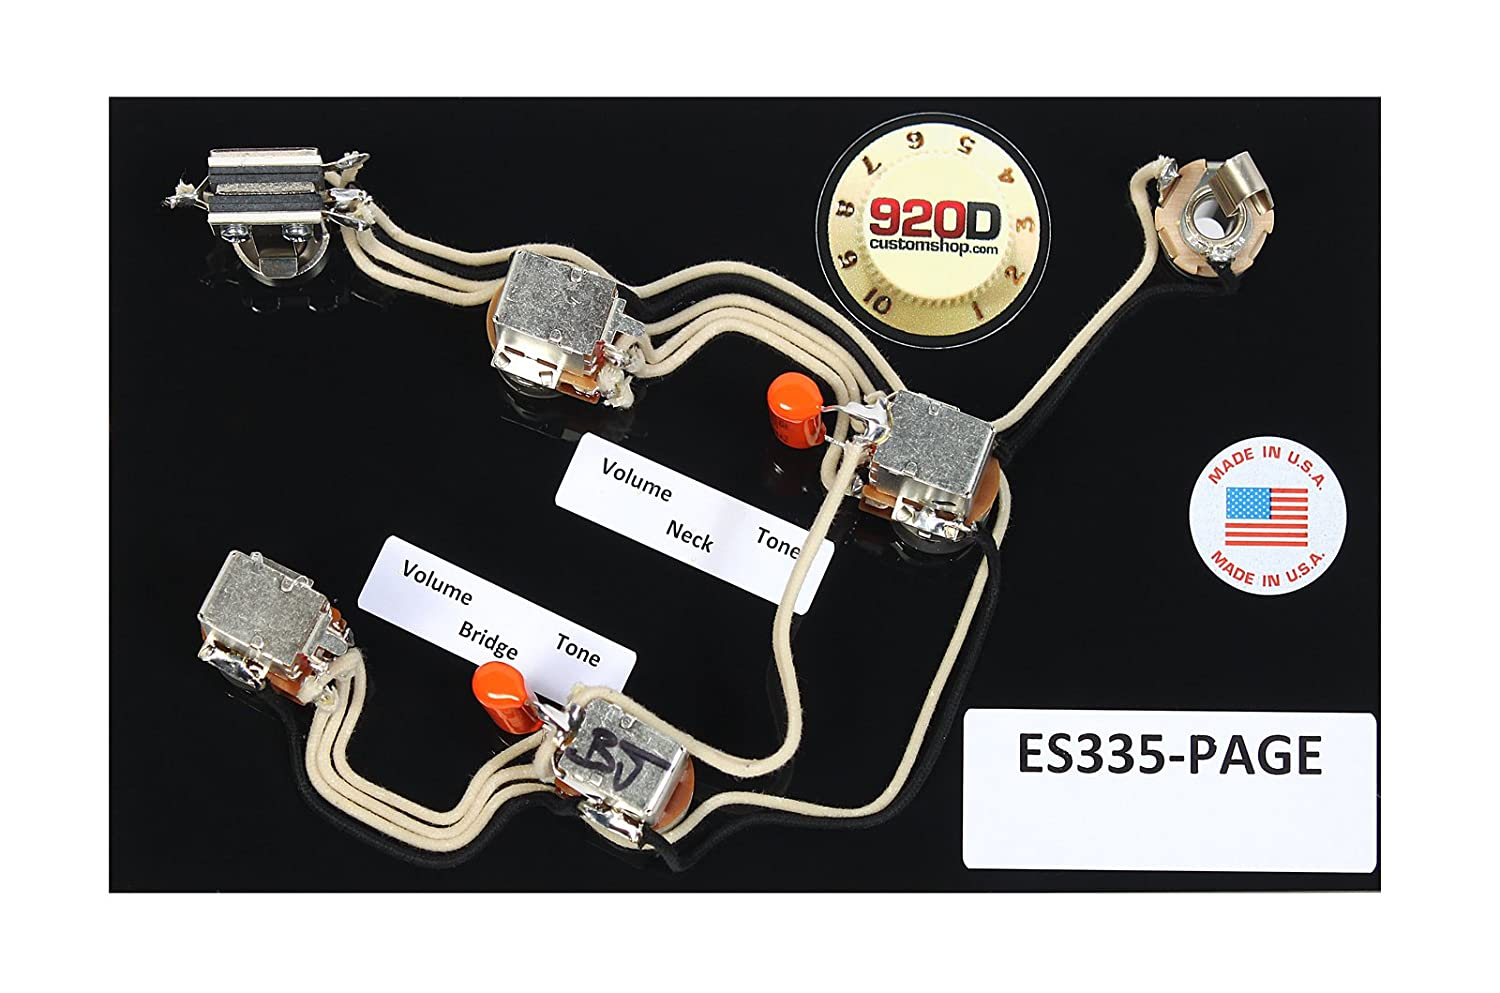 jimmy page wiring harness uk jimmy image wiring gibson es 335 wiring harness switchcraft bournes acme orange drop on jimmy page wiring harness uk